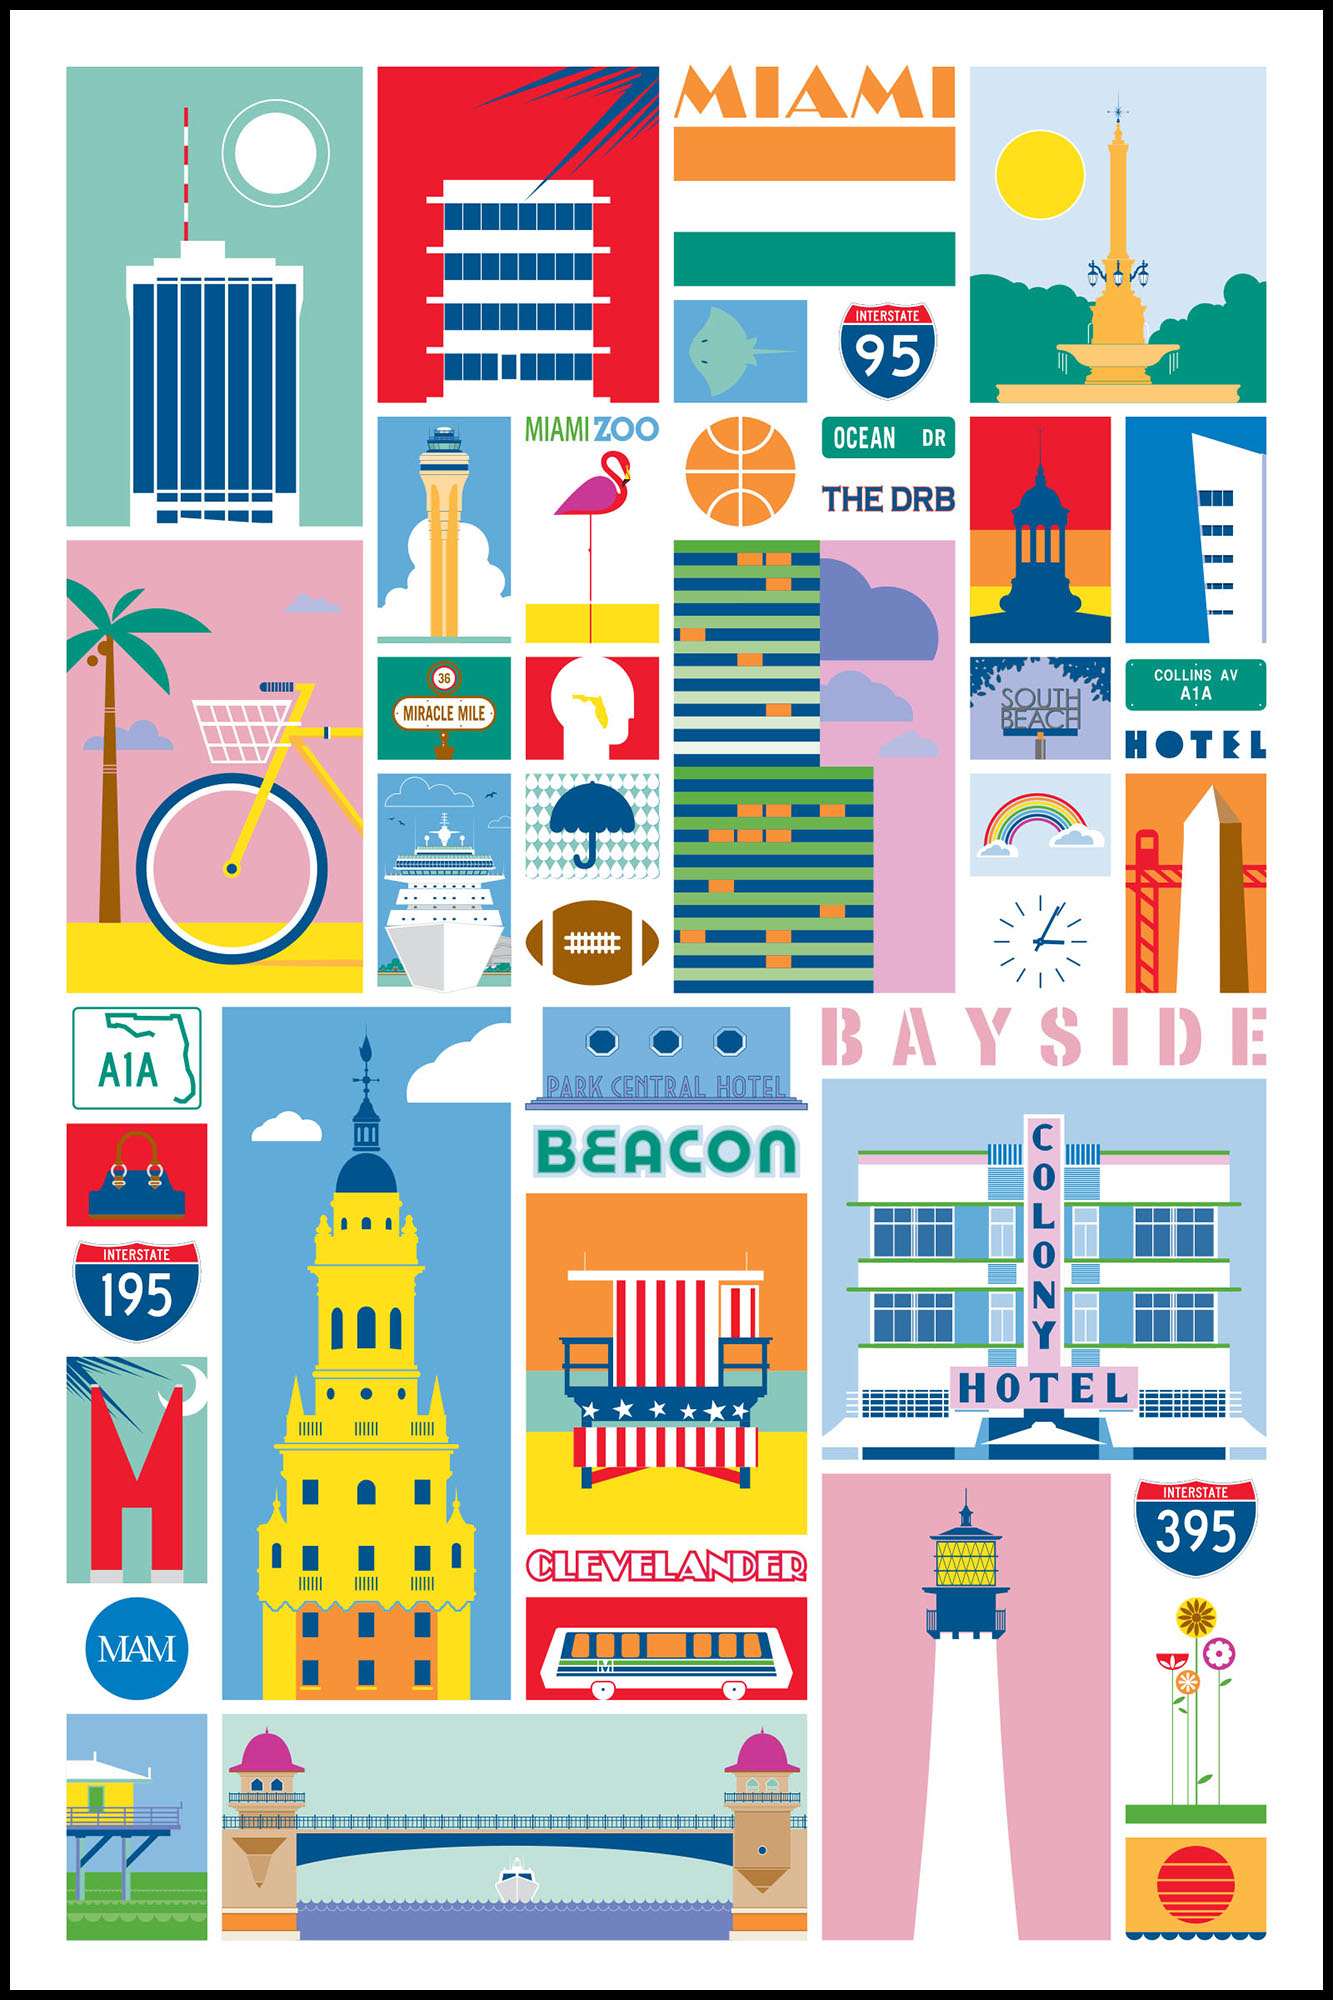 Miami Illustrated_24 x 36.jpg